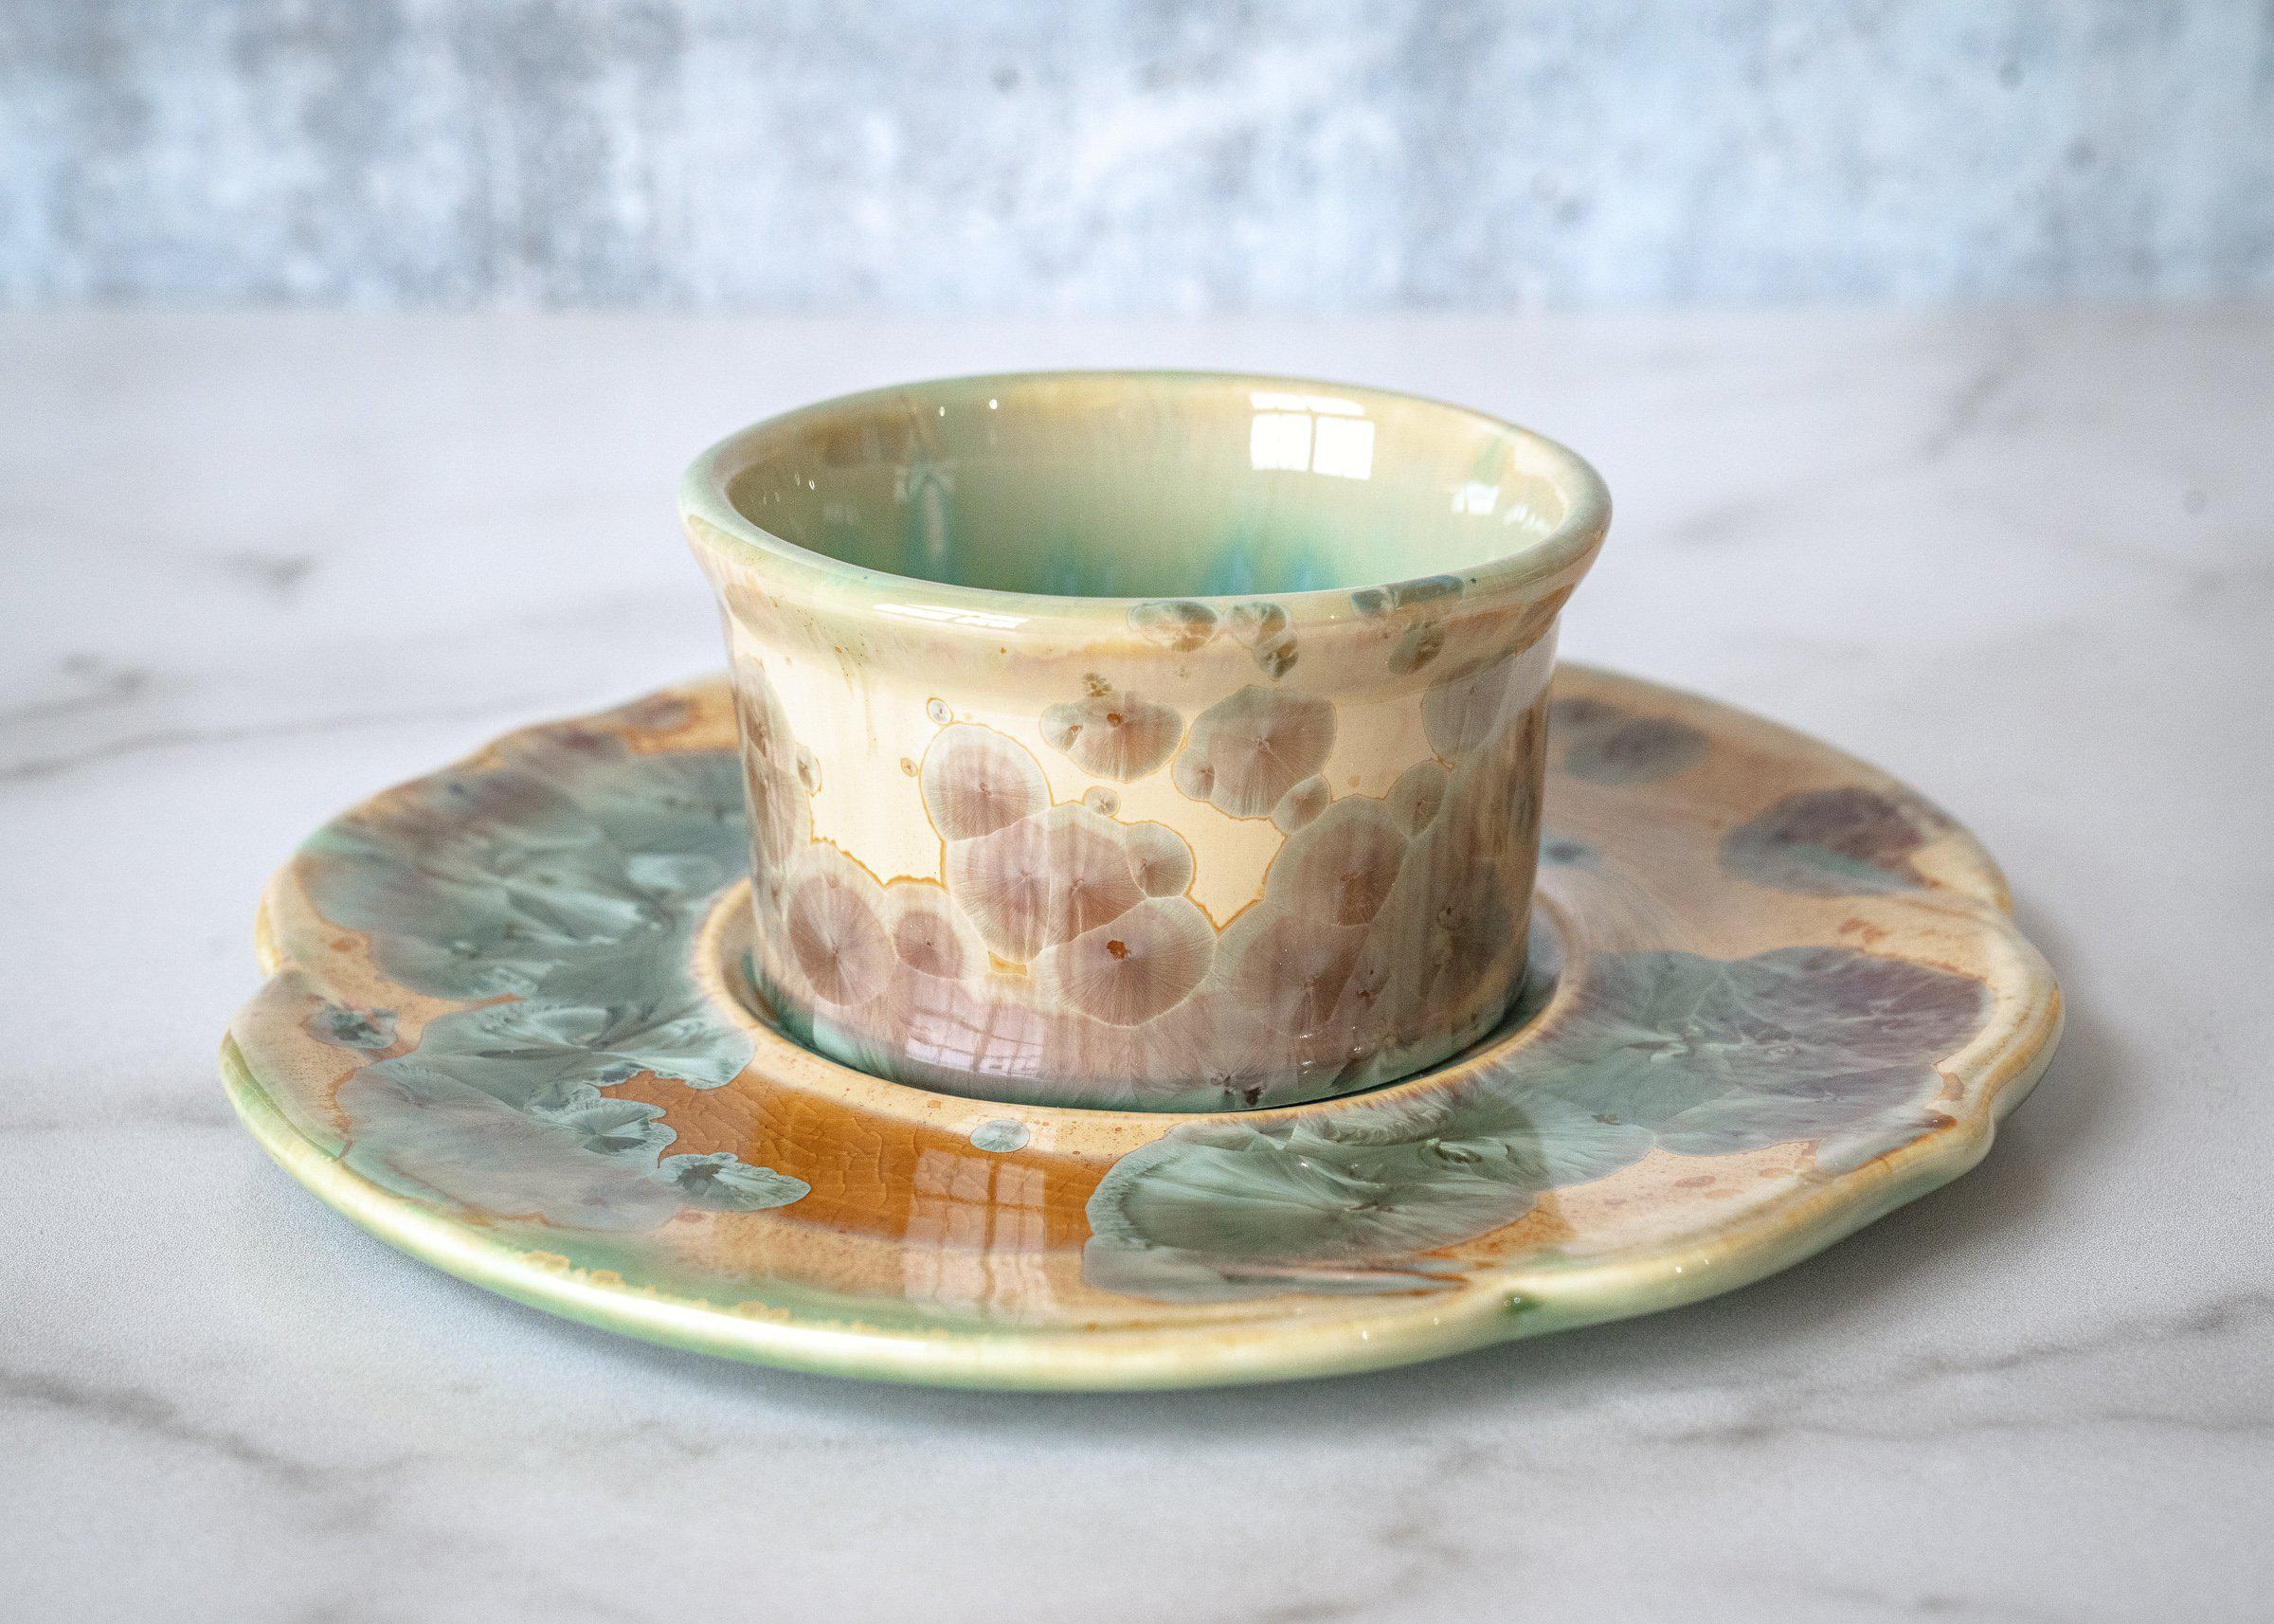 Appetizer - Bowl - Plate - Saltmeadow Glaze - Serveware - Small Server - Pottery - Edgecomb Potters